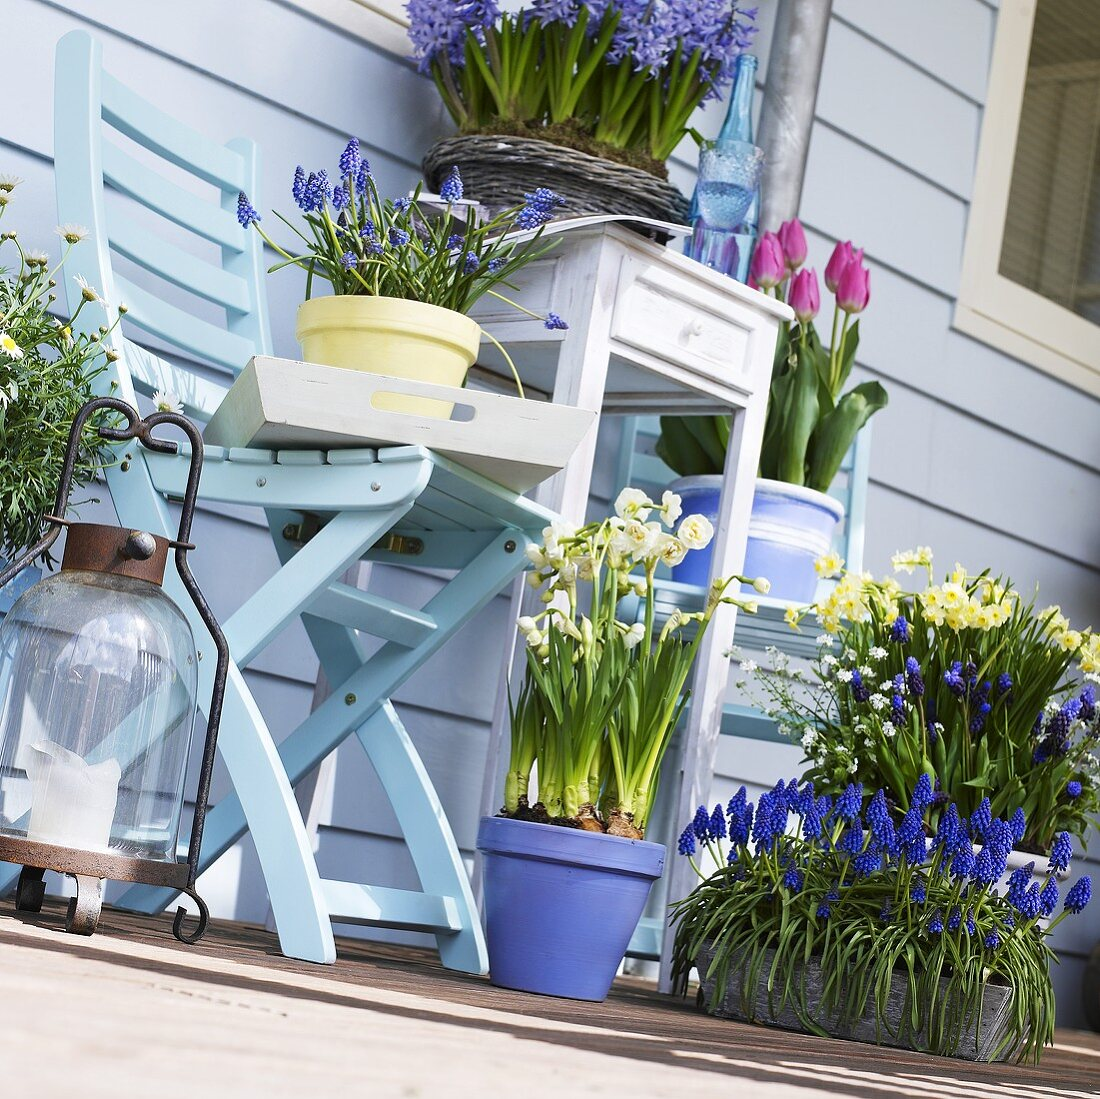 Various types of spring flowers in pots on a balcony